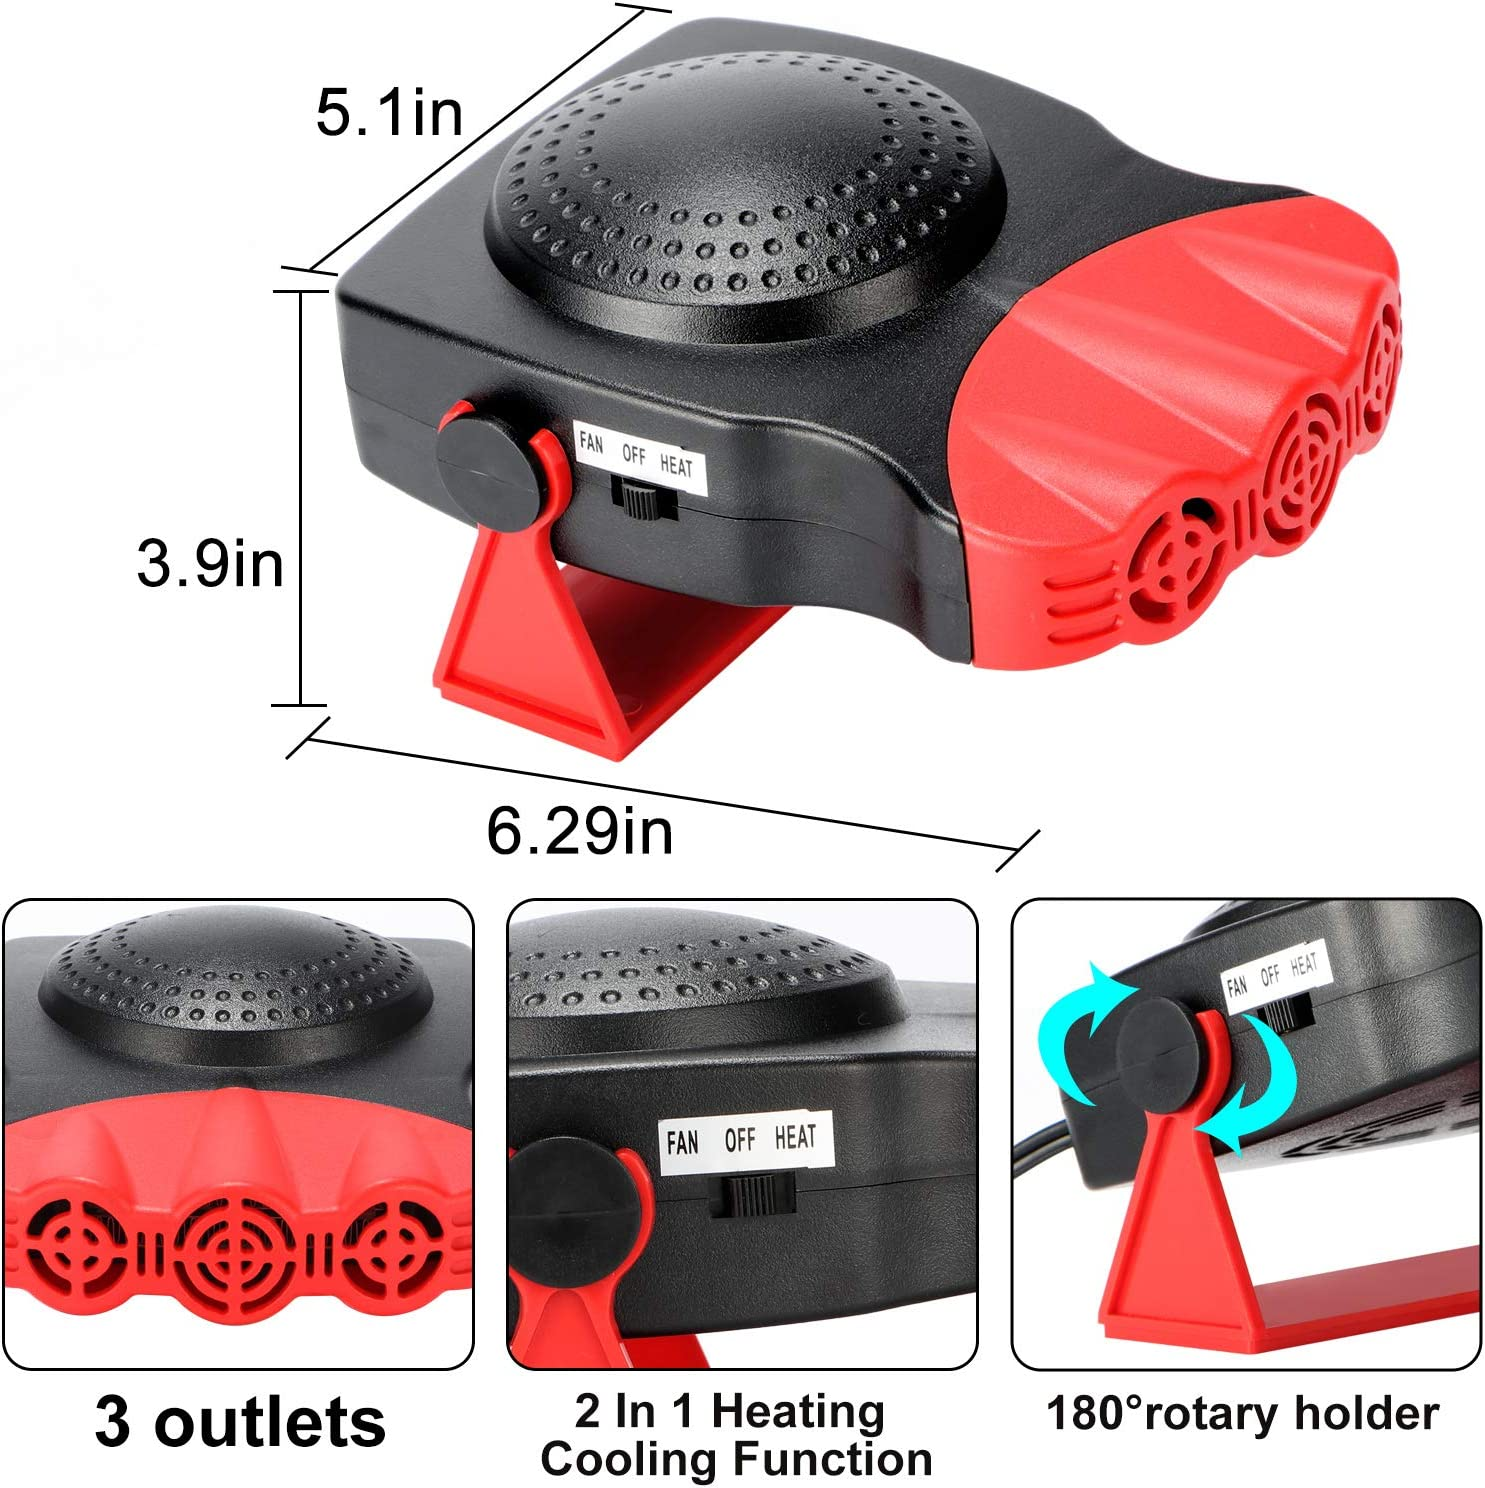 Fast Heating Quickly Defrosts Defogger 12V 150W Auto Ceramic Heater Fan 3-Outlet Plug in Cig Lighter Red Portable Car Heater,Auto Heater Fan,Car Defogger